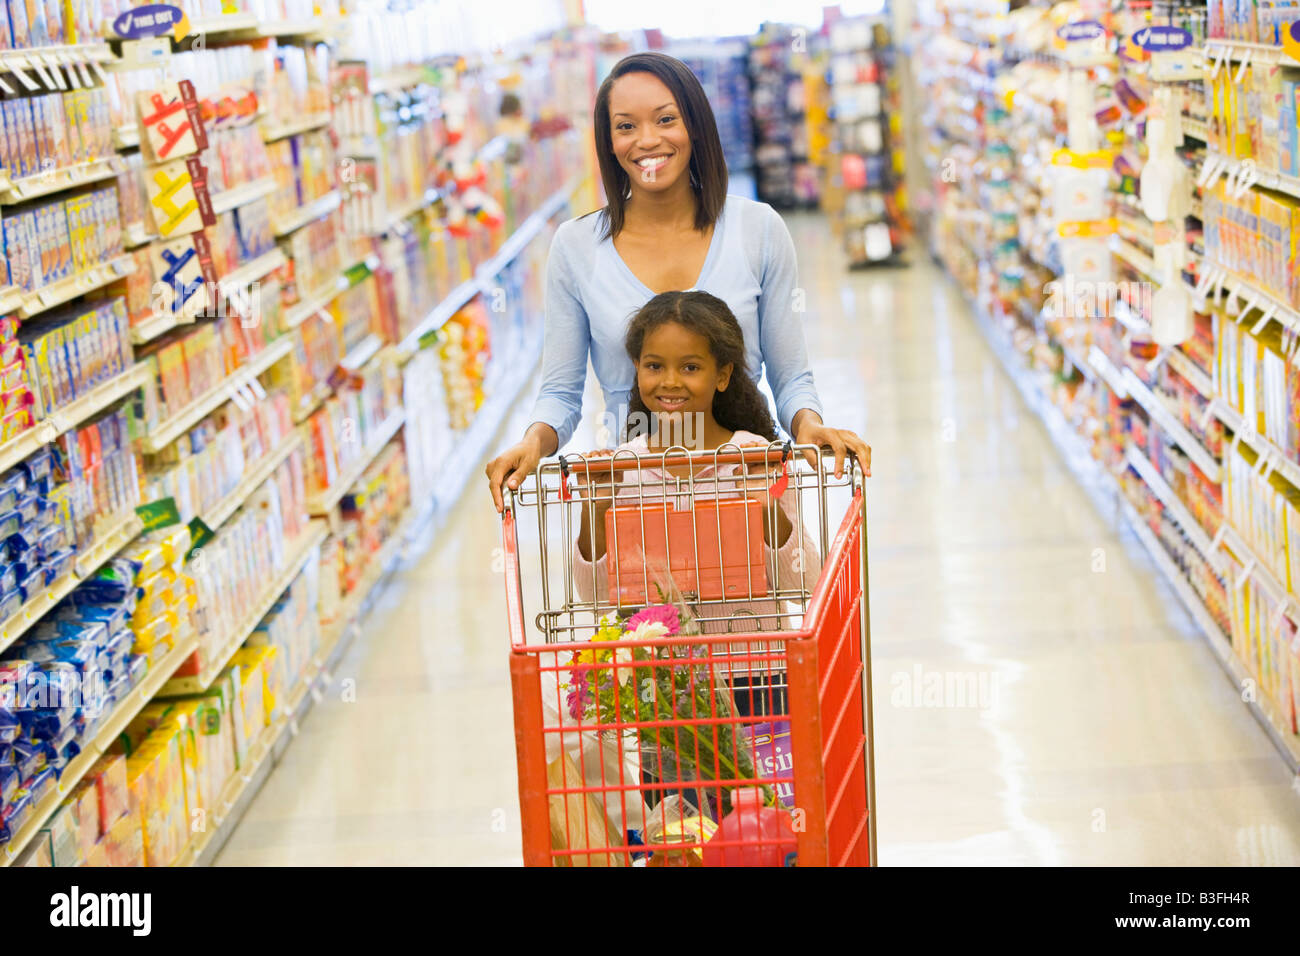 Mother with young daughter shopping at the grocery store. - Stock Image